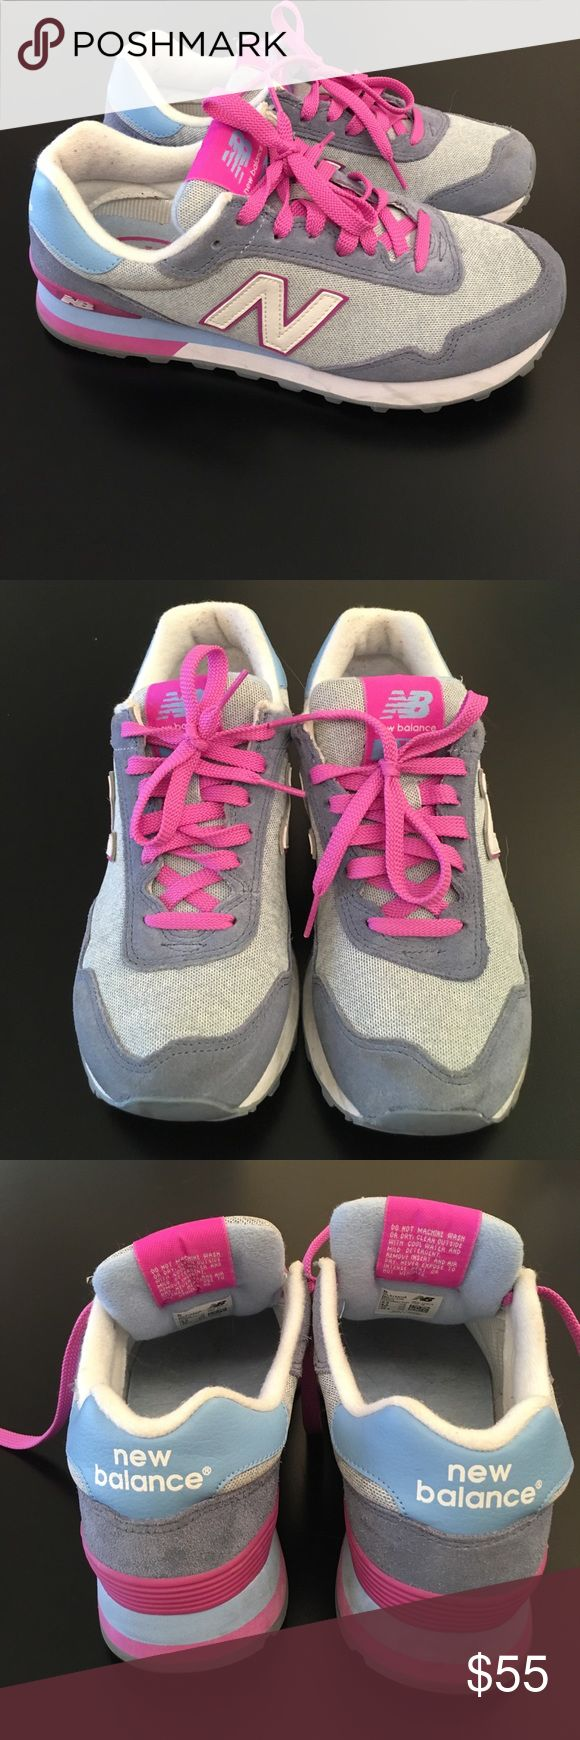 New Balance 515 Tennis Shoes New Balance 515 Lifestyle Shoes. Worn Twice. EUC. Grey, blue and purple color. New Balance Shoes Athletic Shoes